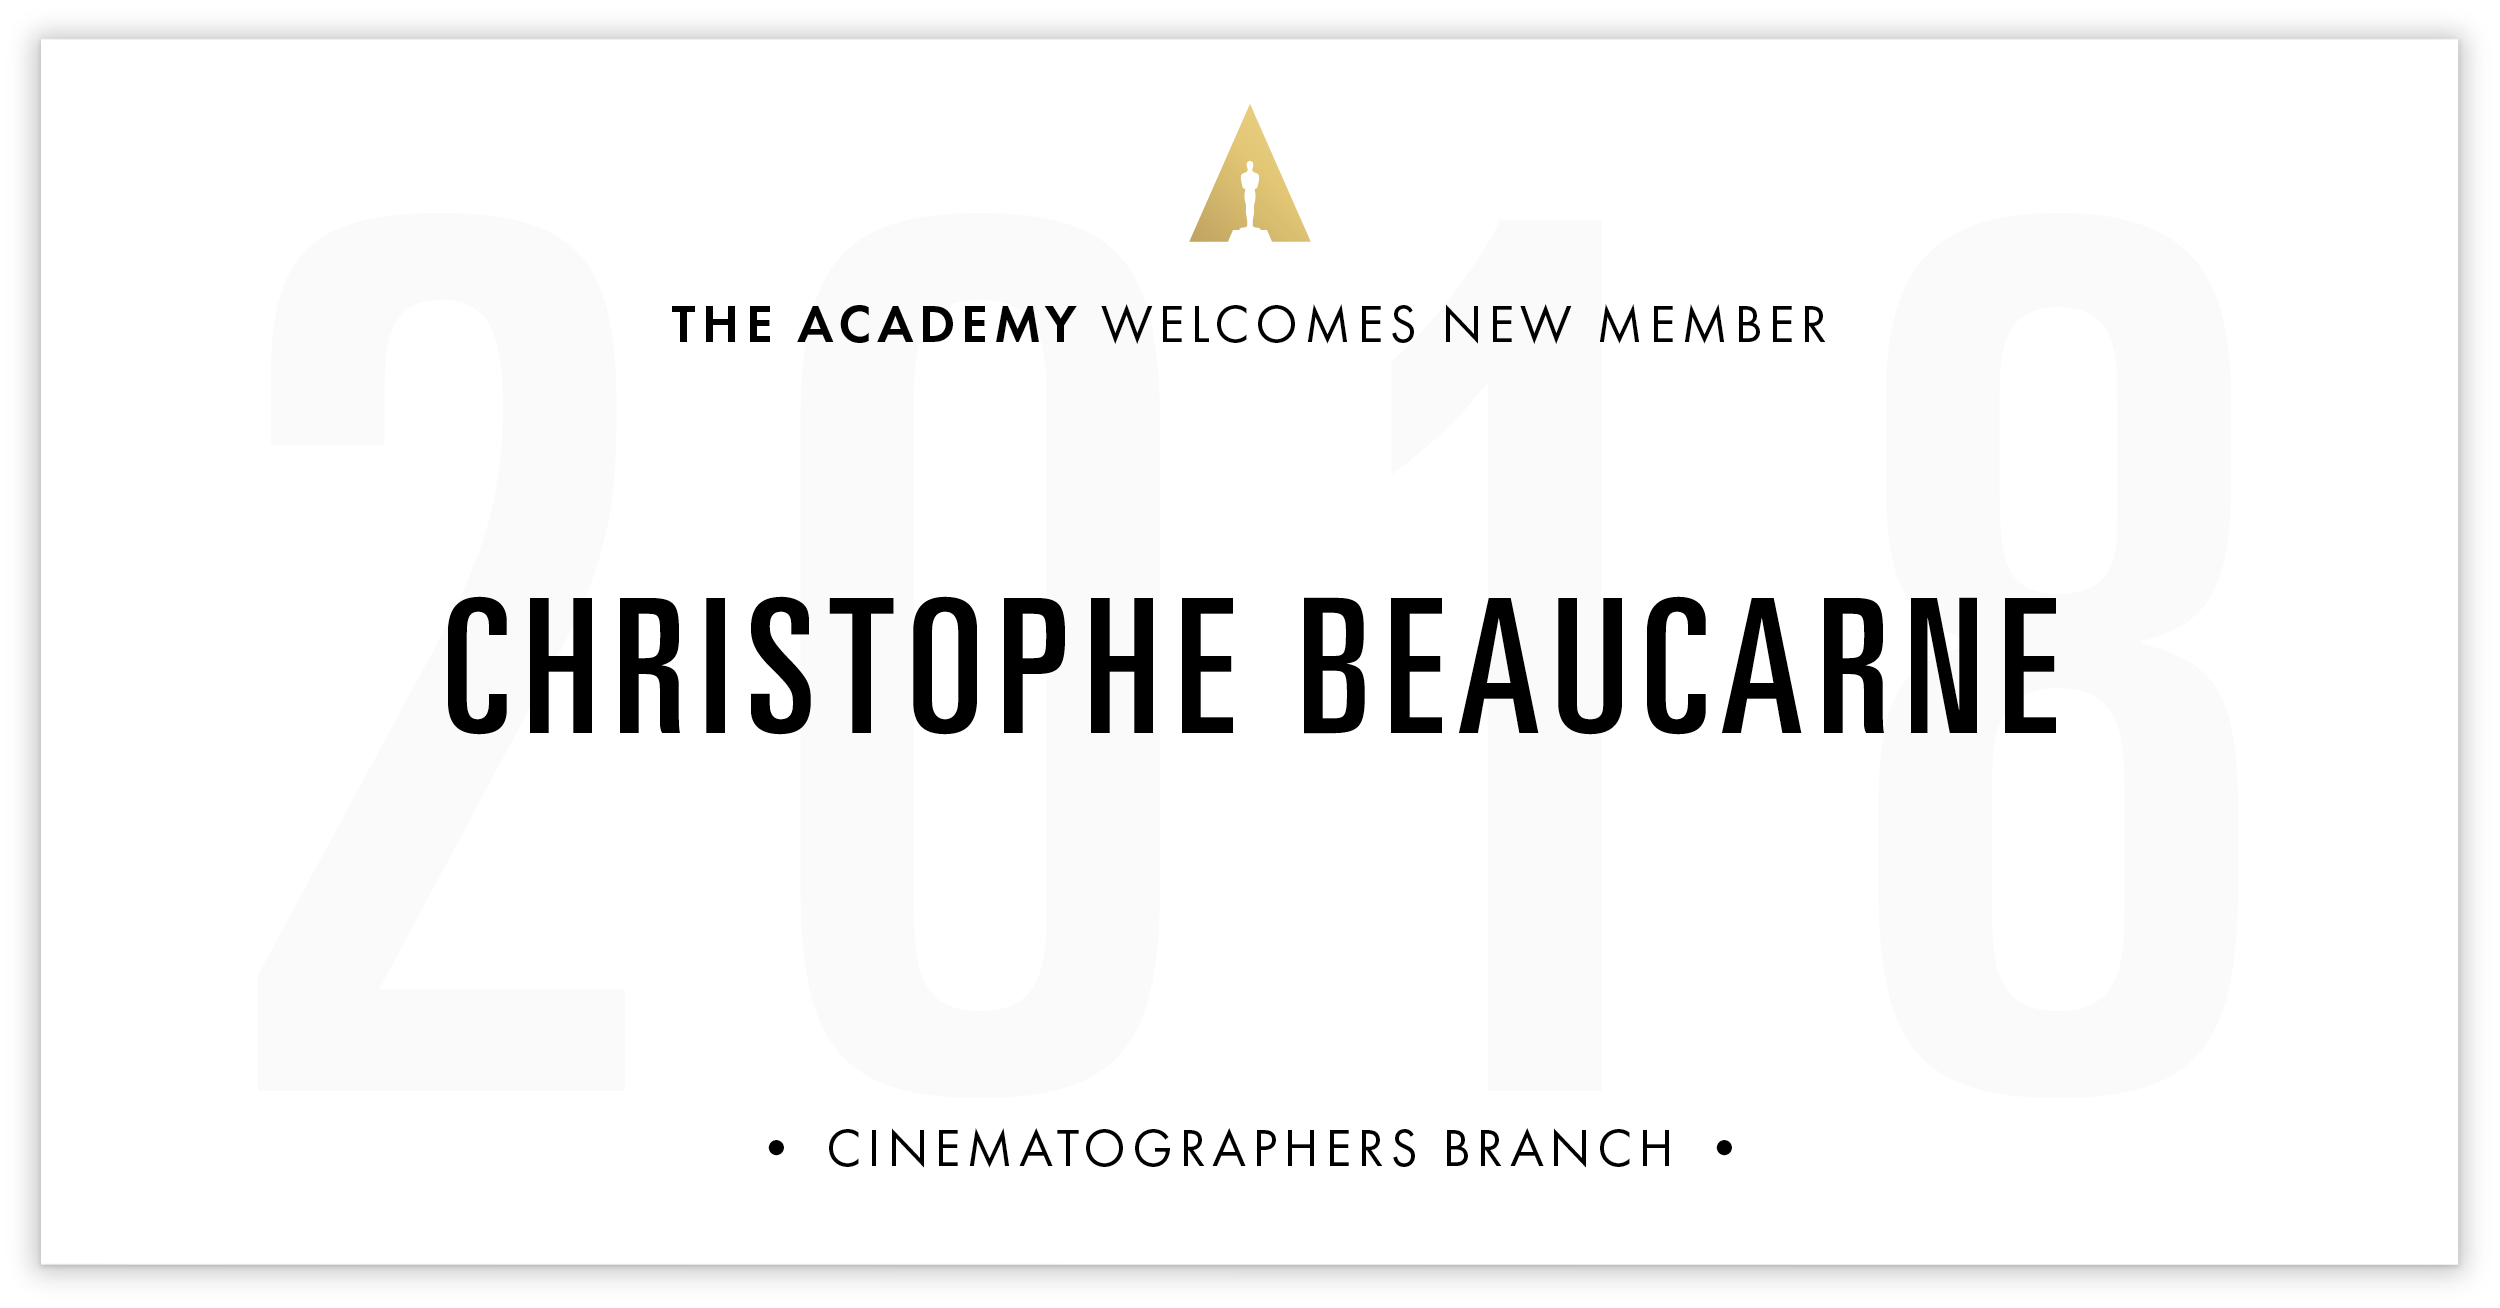 Christophe Beaucarne is invited!